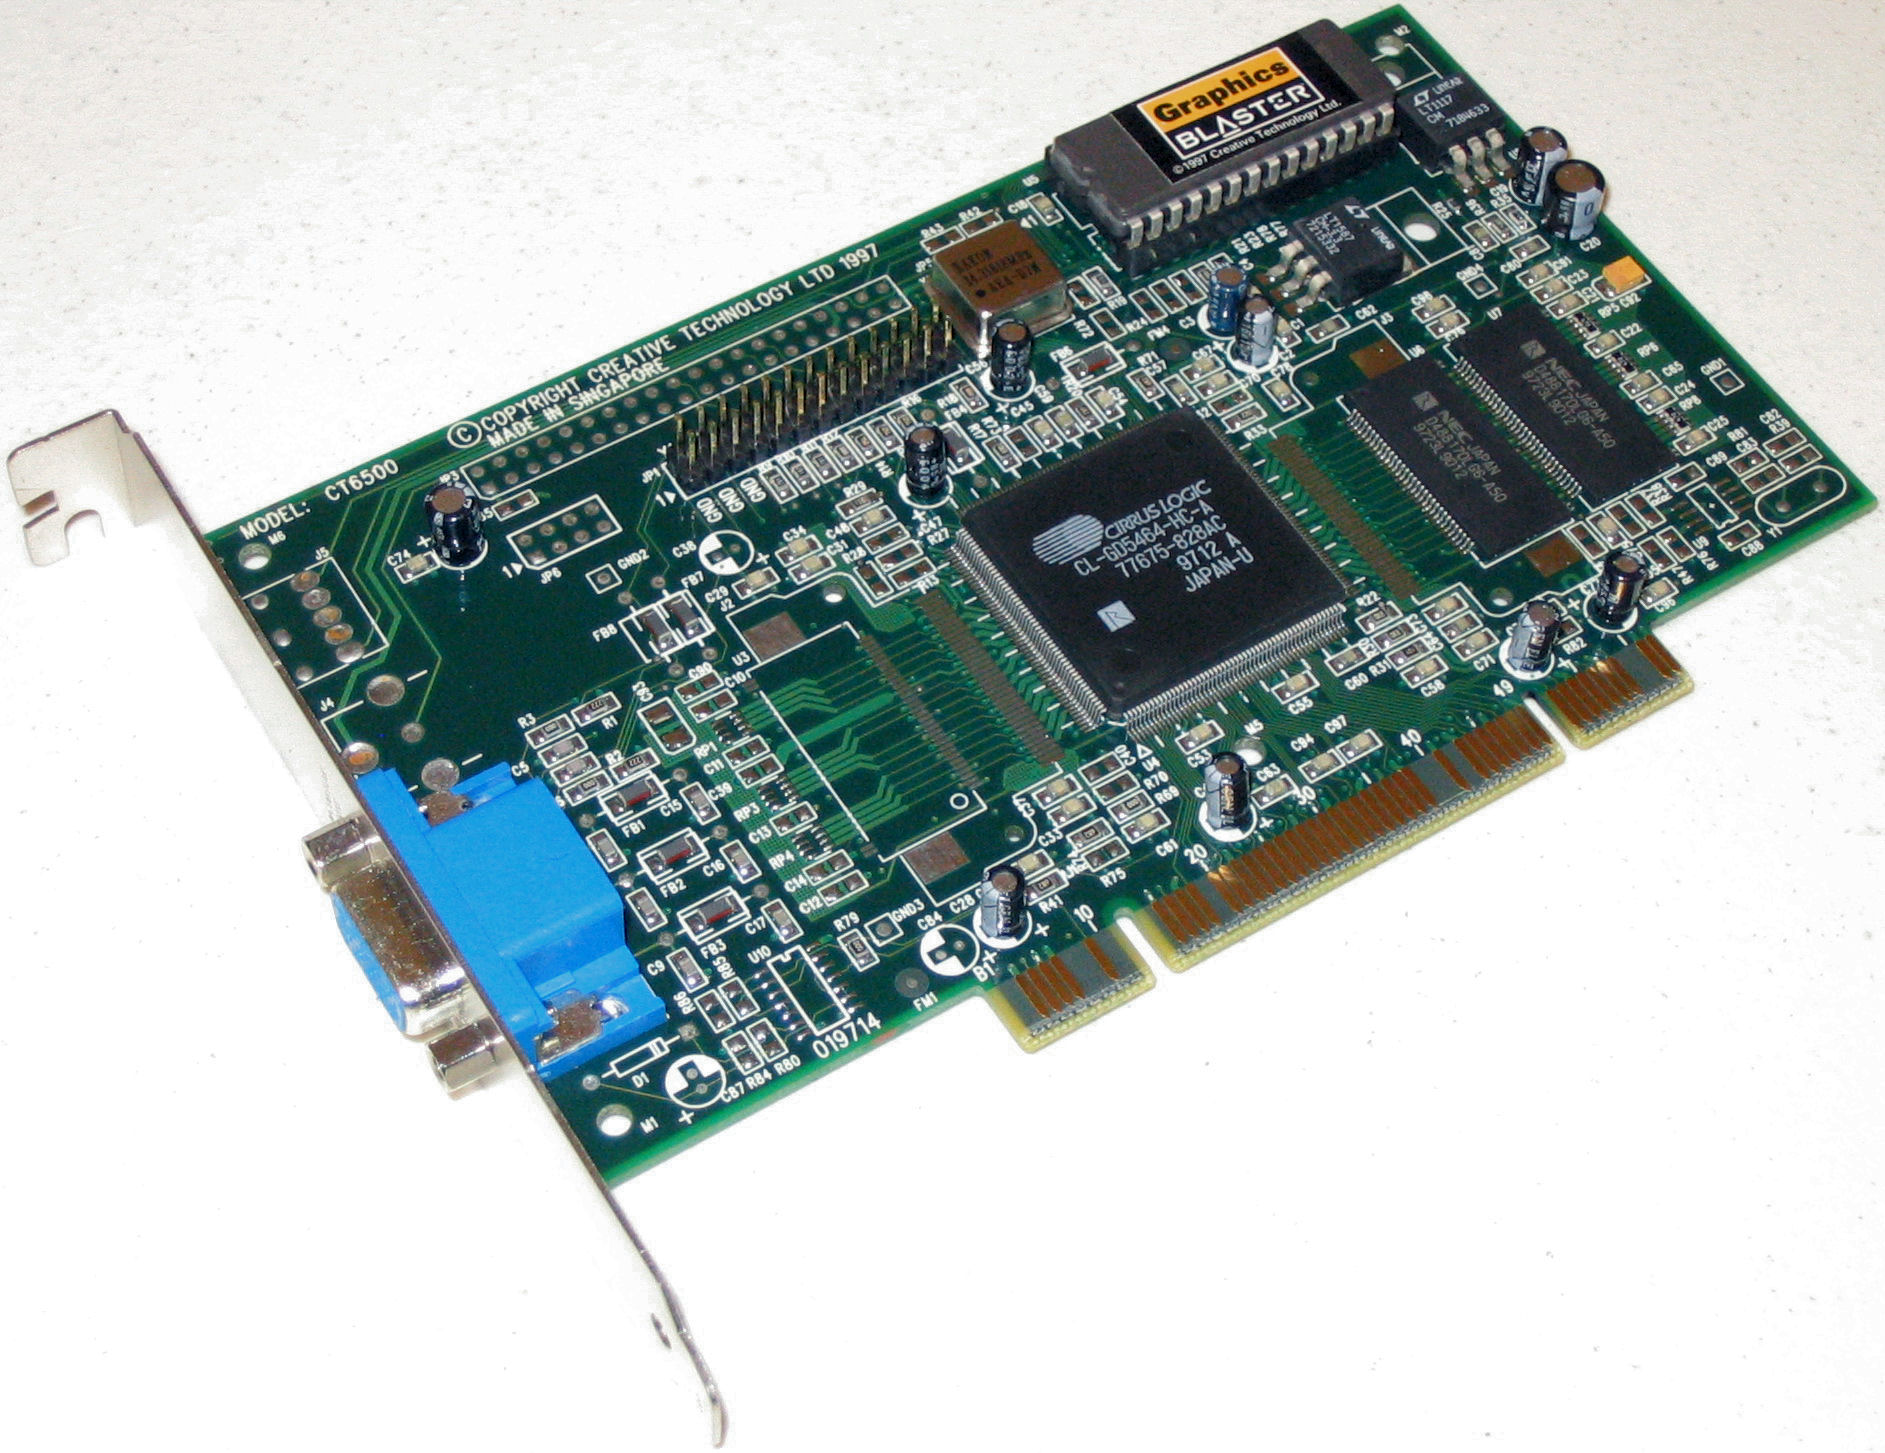 CIRUS LOGIC 5446 DRIVER FOR PC